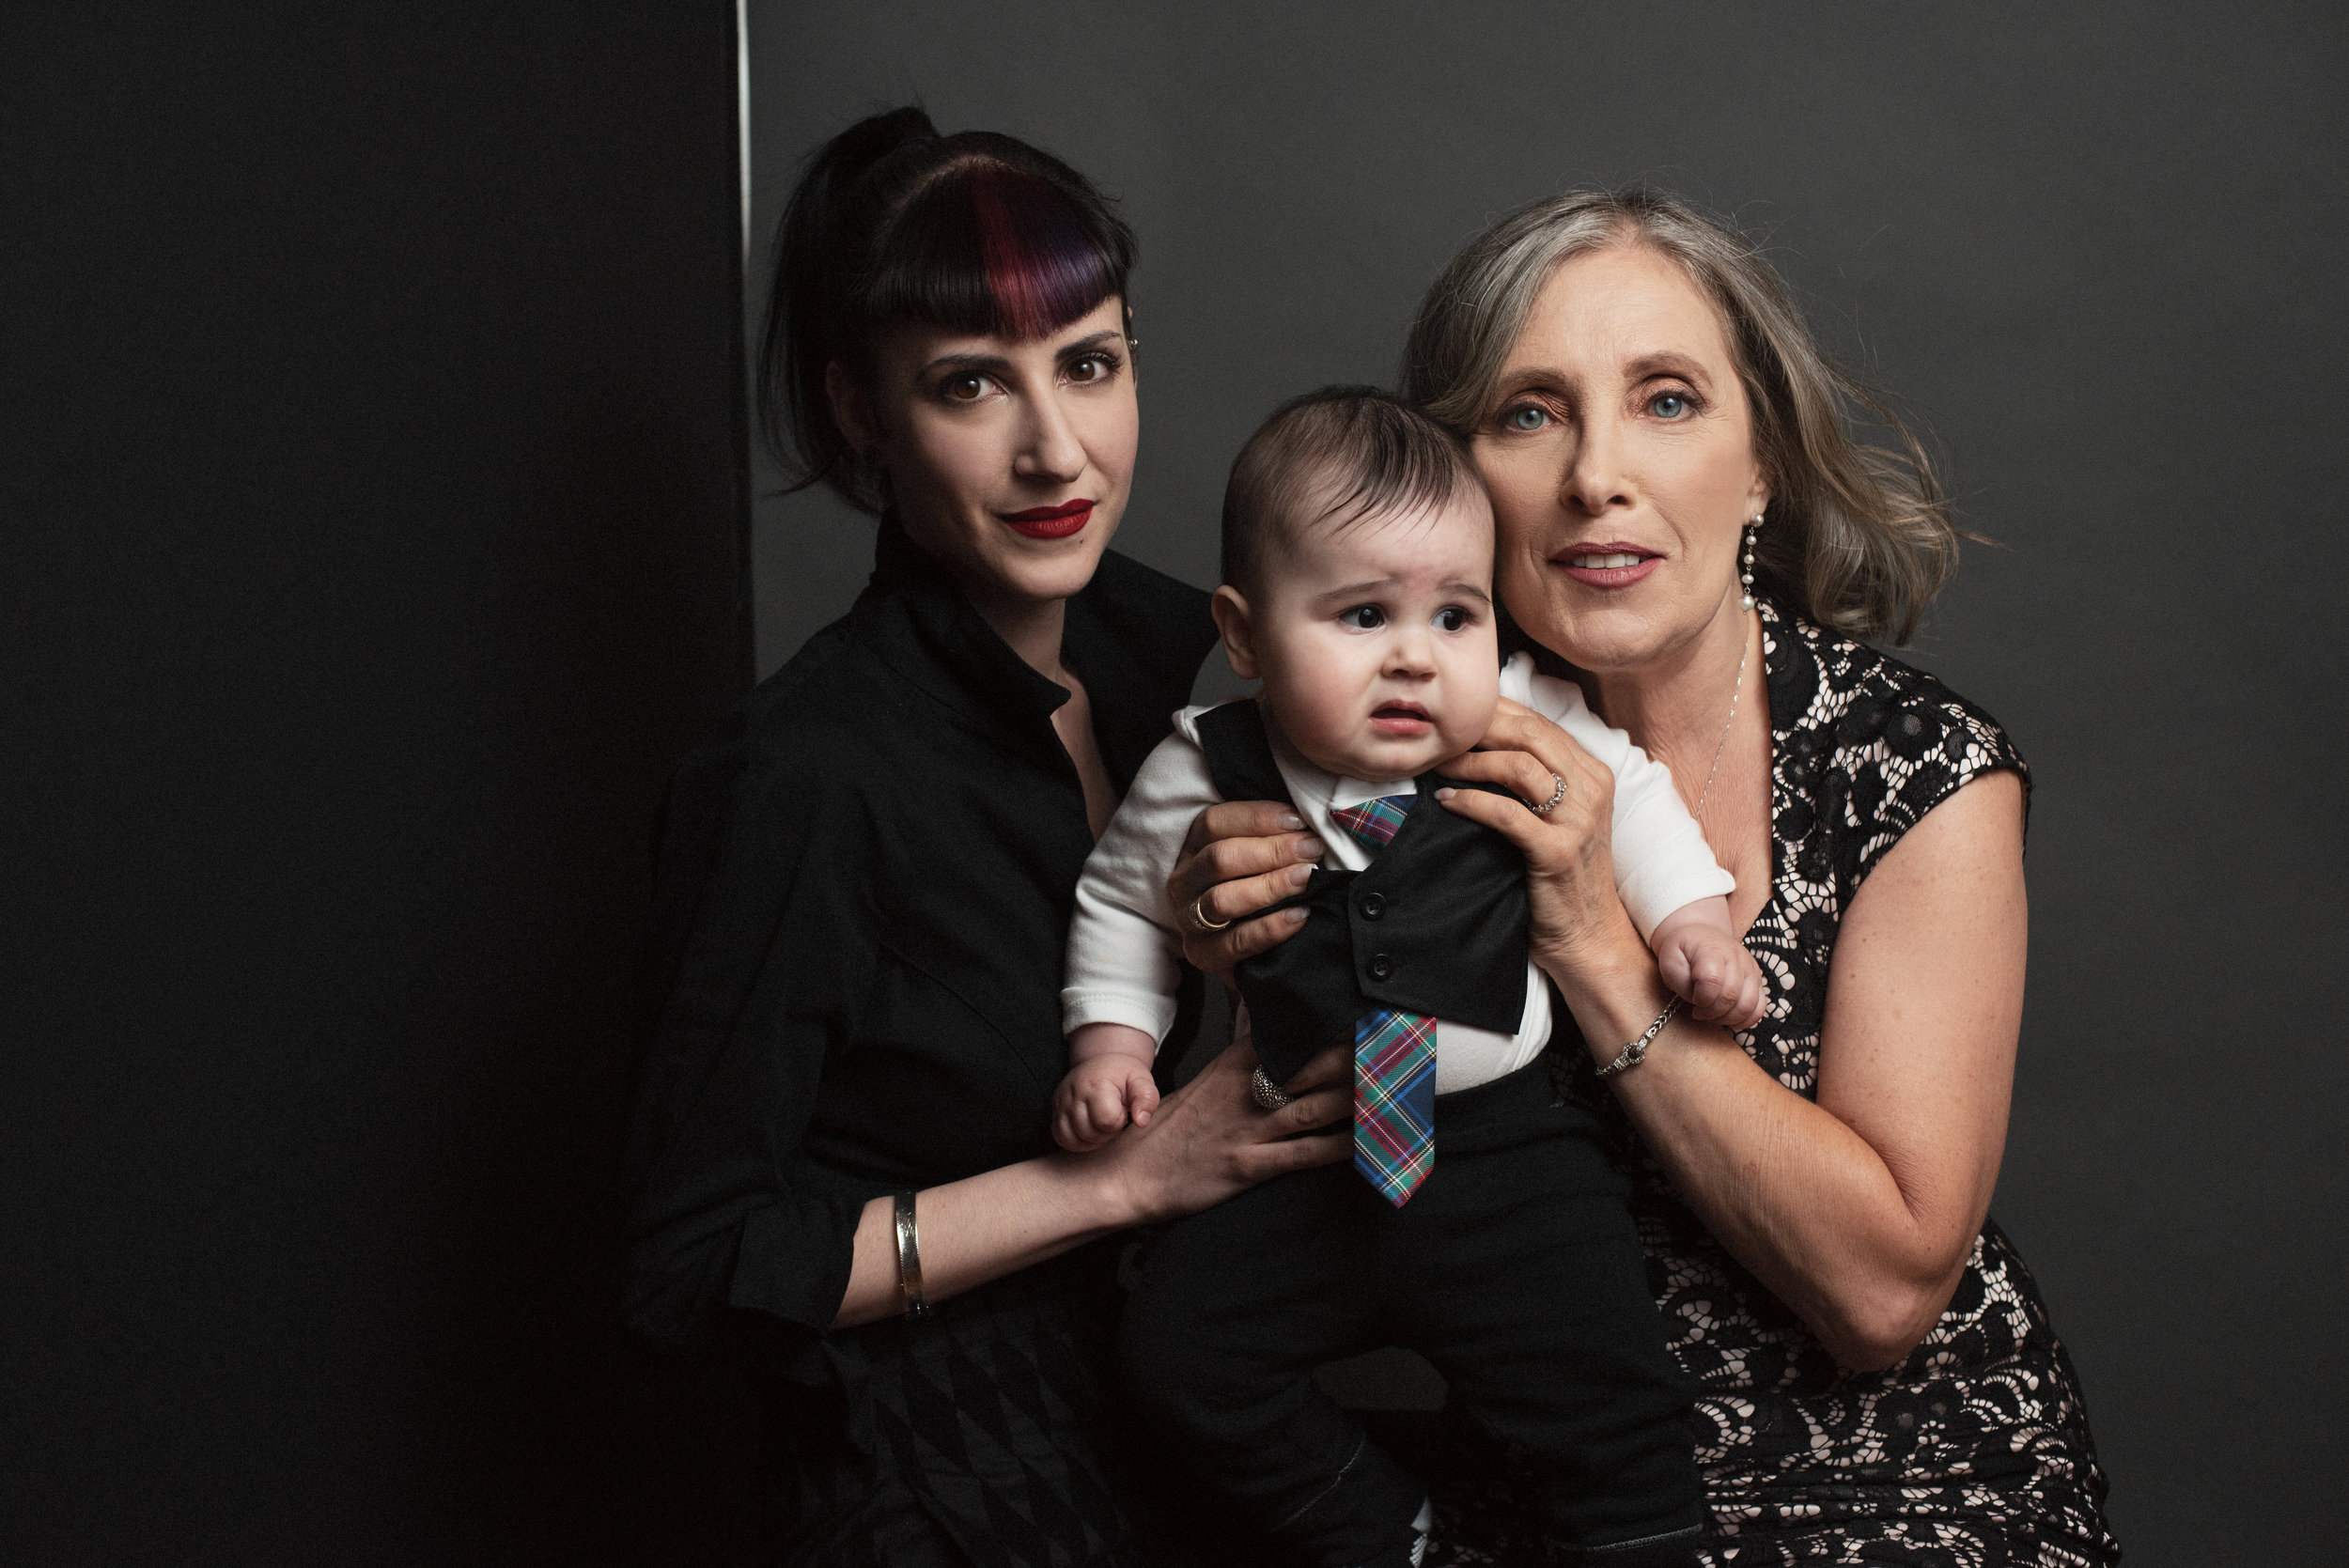 Simone (right) with daughter Anna (left) and grandson Max (center).